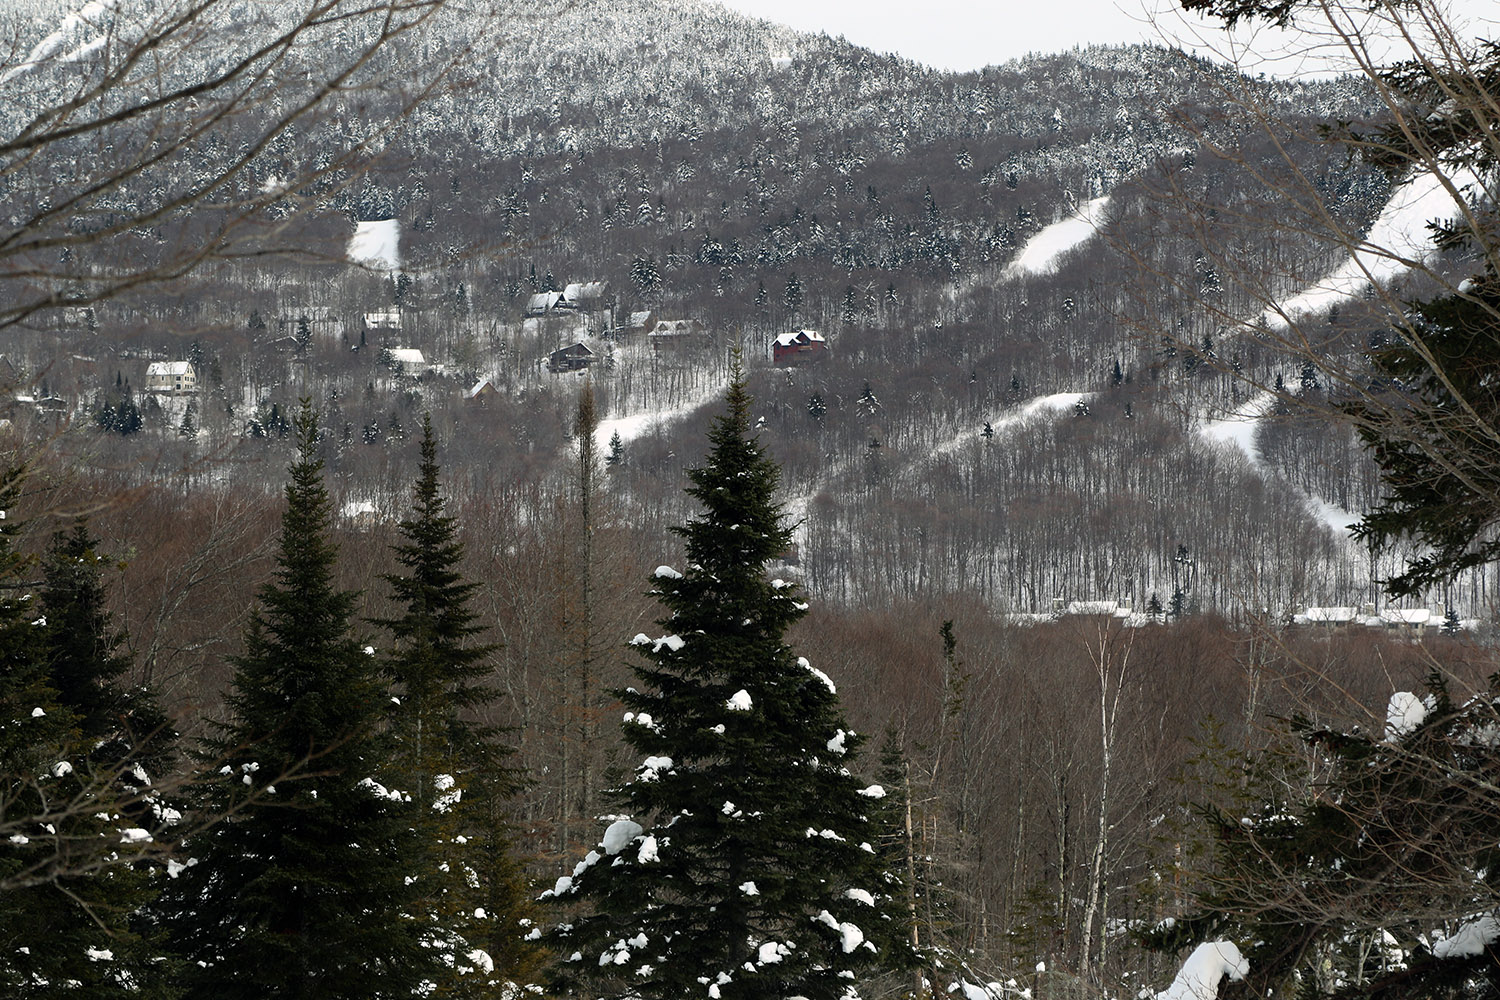 An image looking across from the Moose-Ski trail in the beaver ponds area of the Bolton Valley Nordic & Backcountry Network toward the Bolton Valley Village at Bolton Valley Ski Resort in Vermont